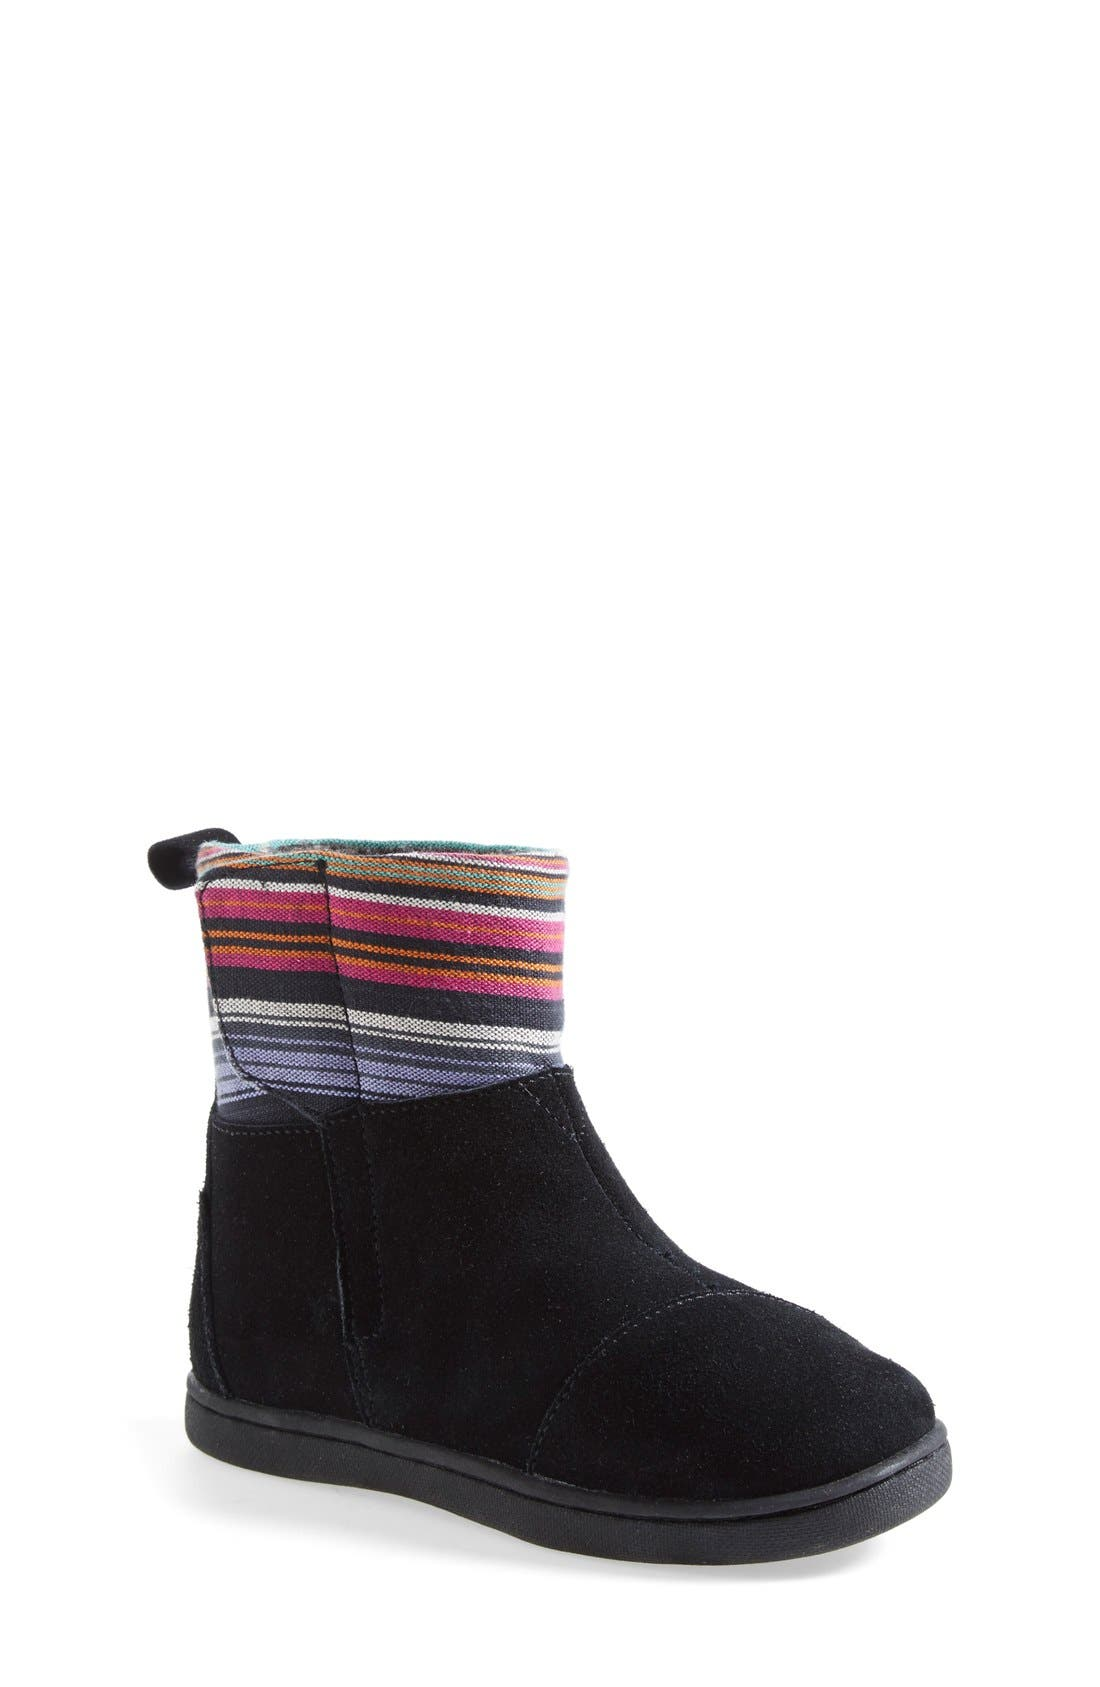 Alternate Image 1 Selected - TOMS 'Nepal - Tiny' Boot (Toddler)